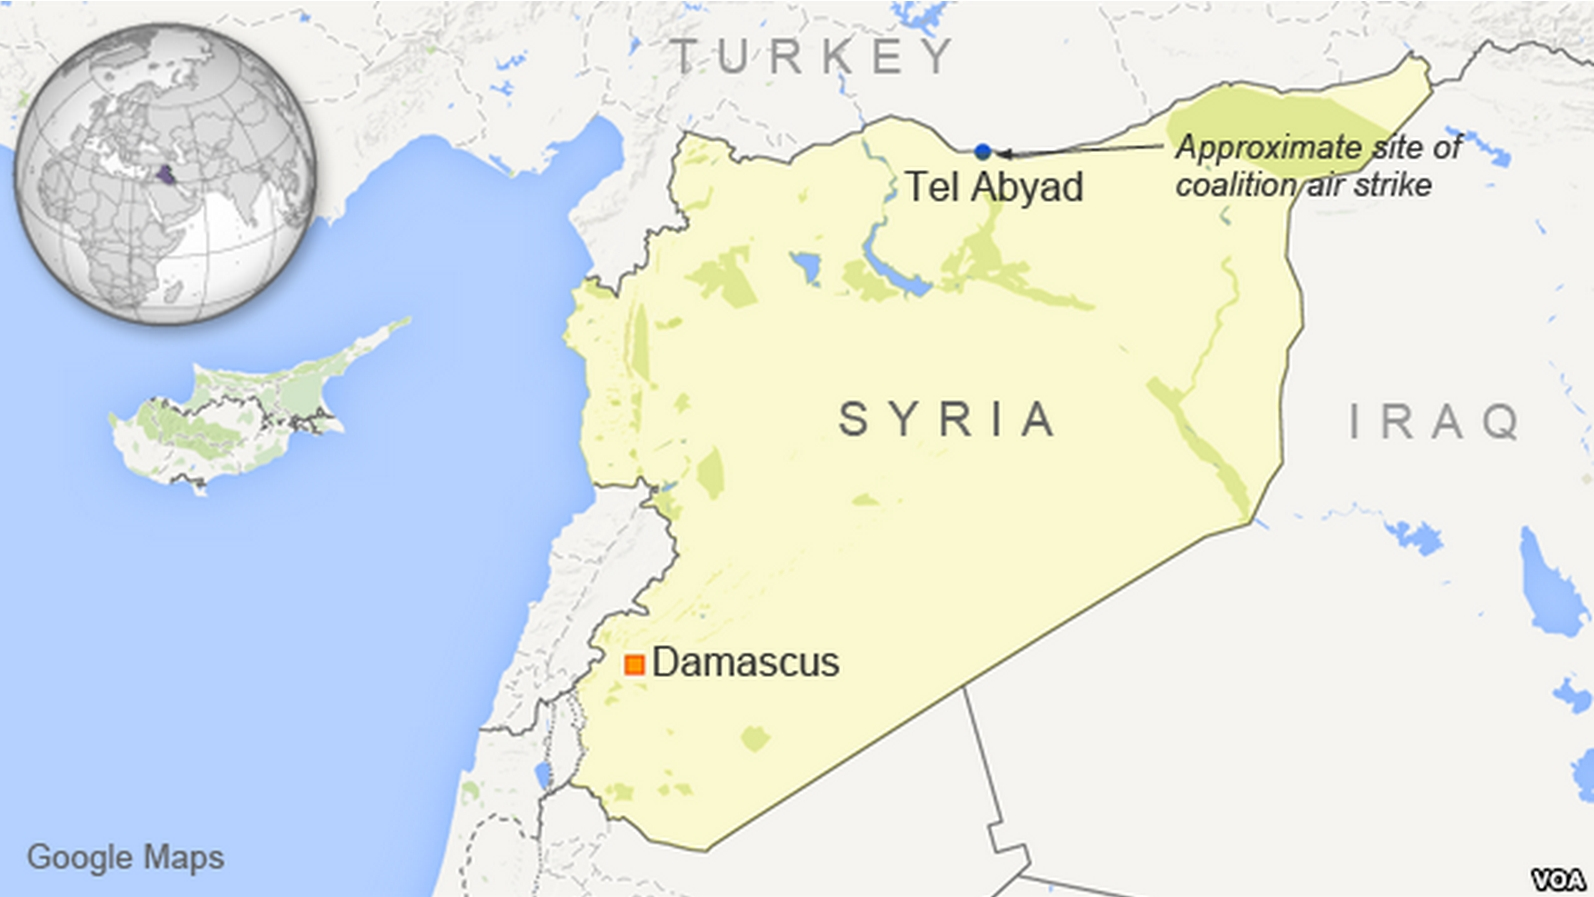 Map showing approximate site of coalition air strike near Tel Abyad, Syria